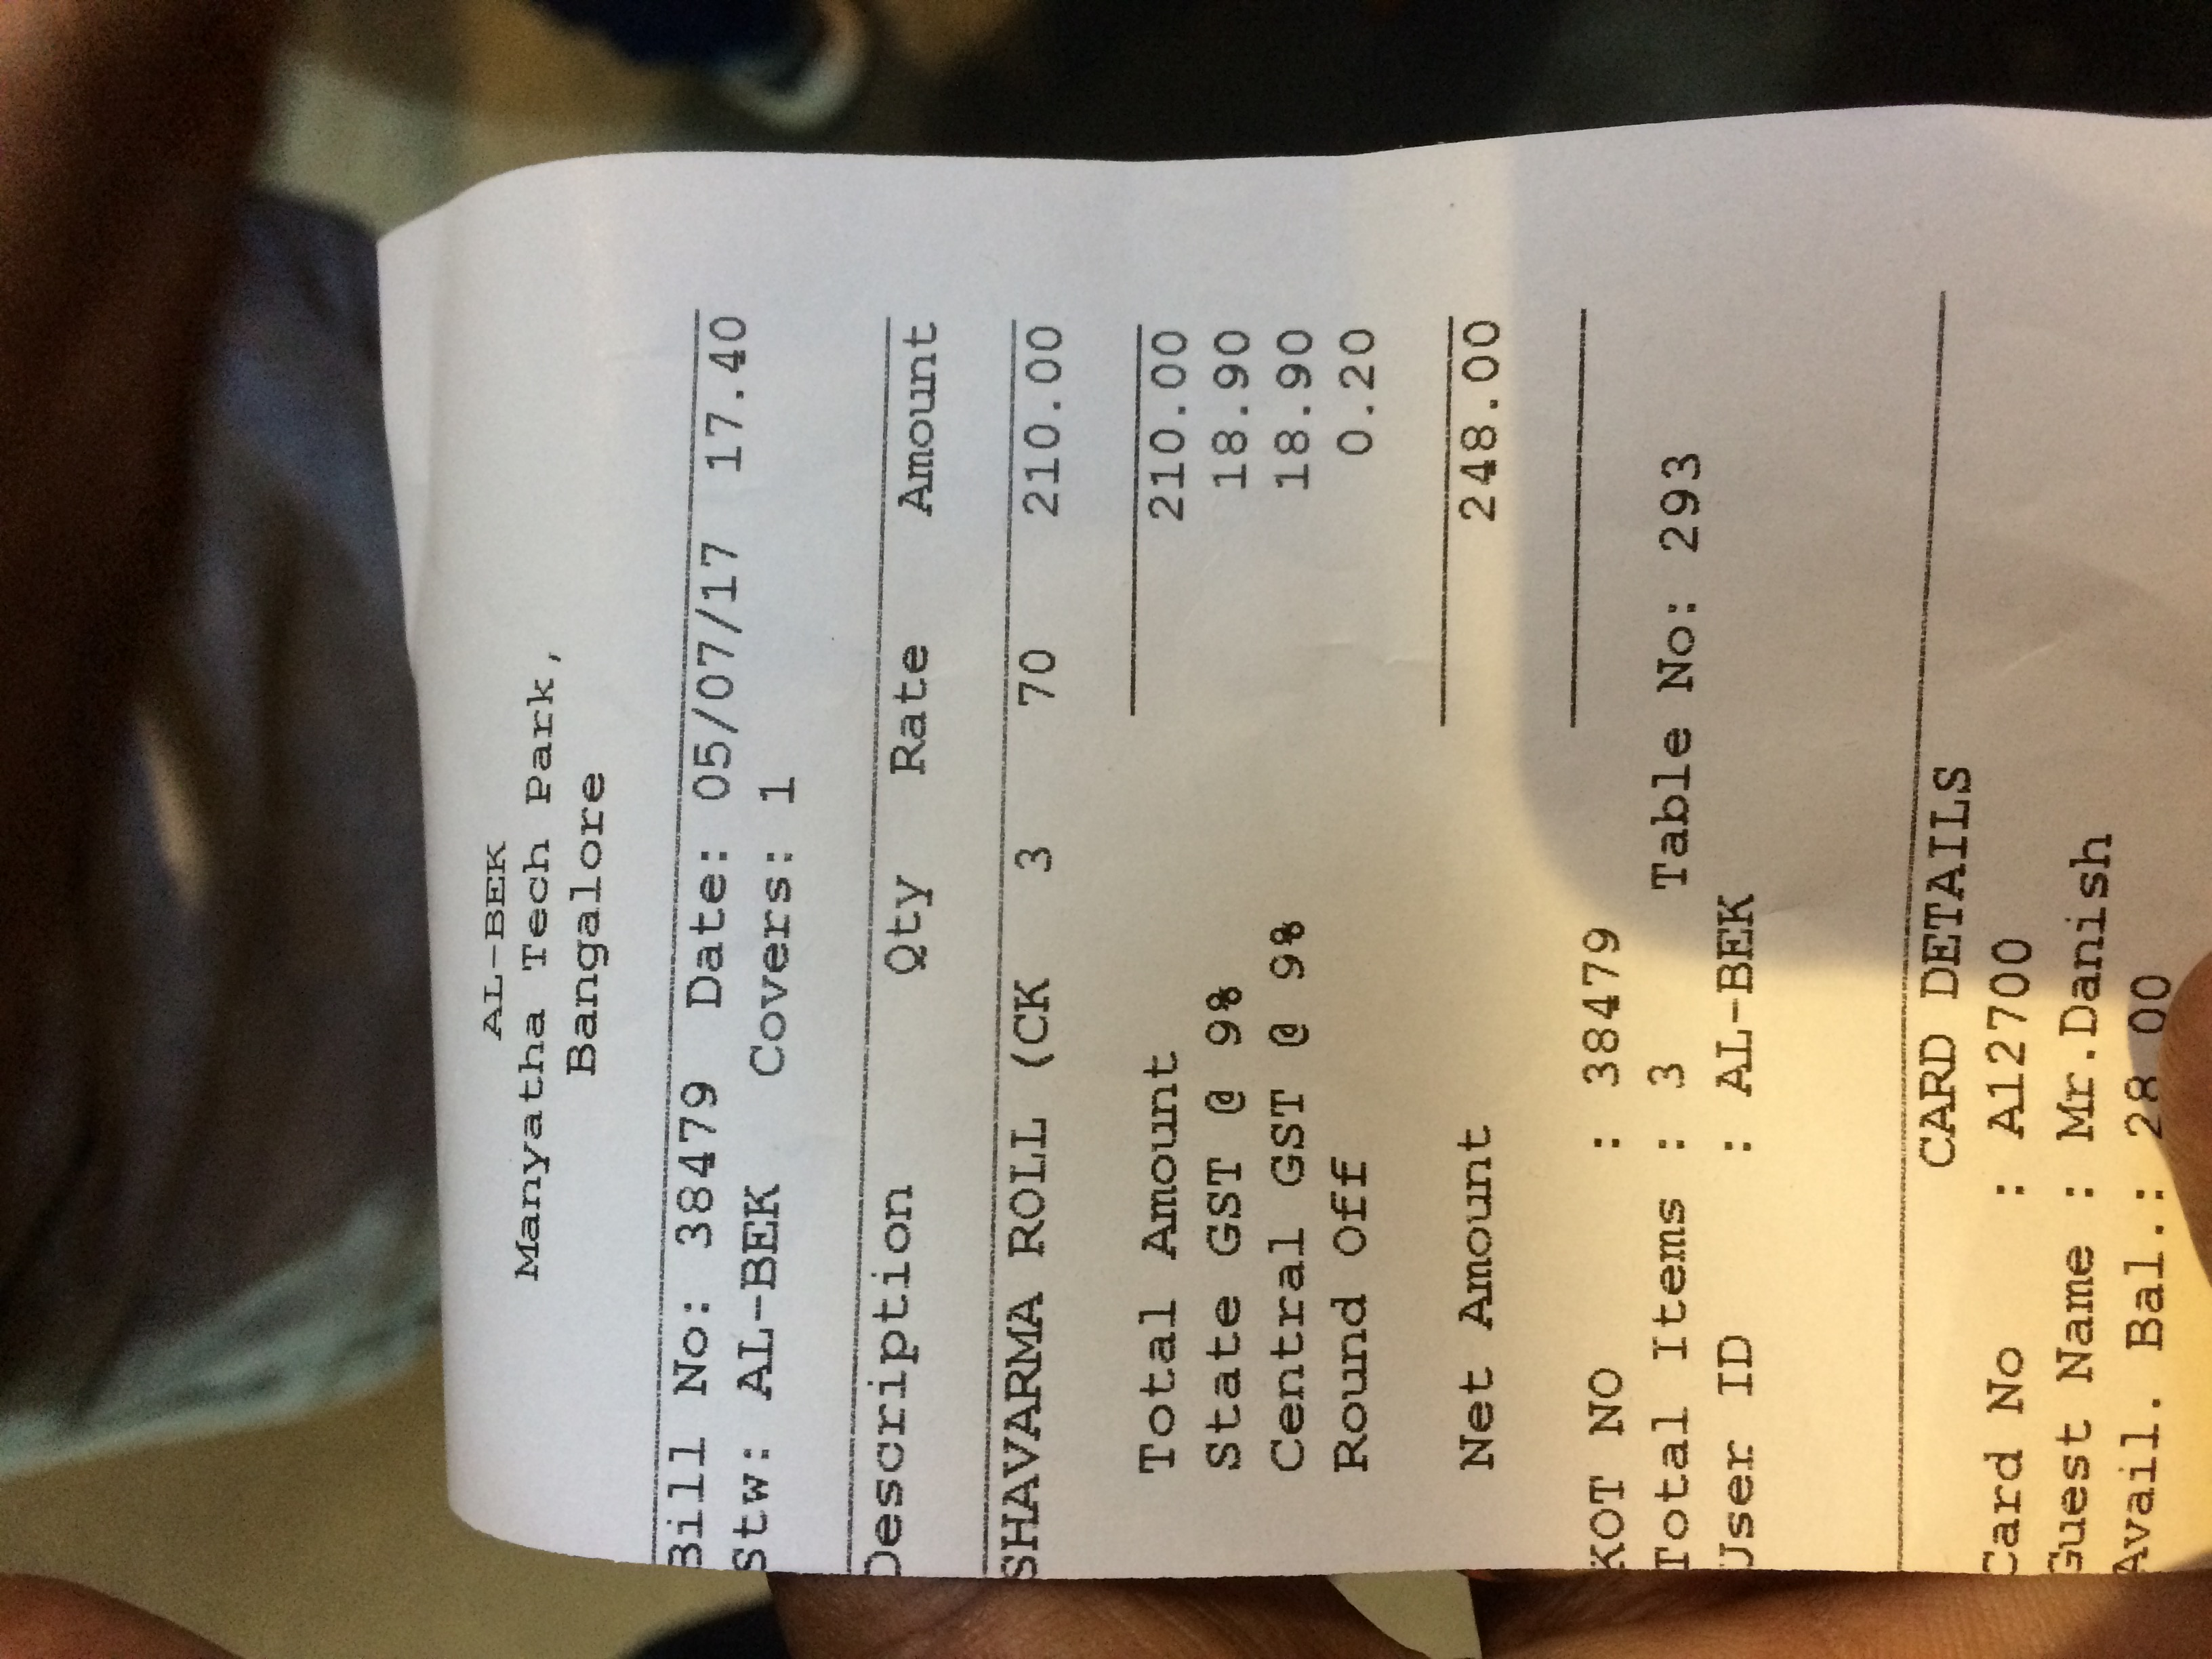 ALLBEK Restaurant Charging more after GST Tax Implemantation